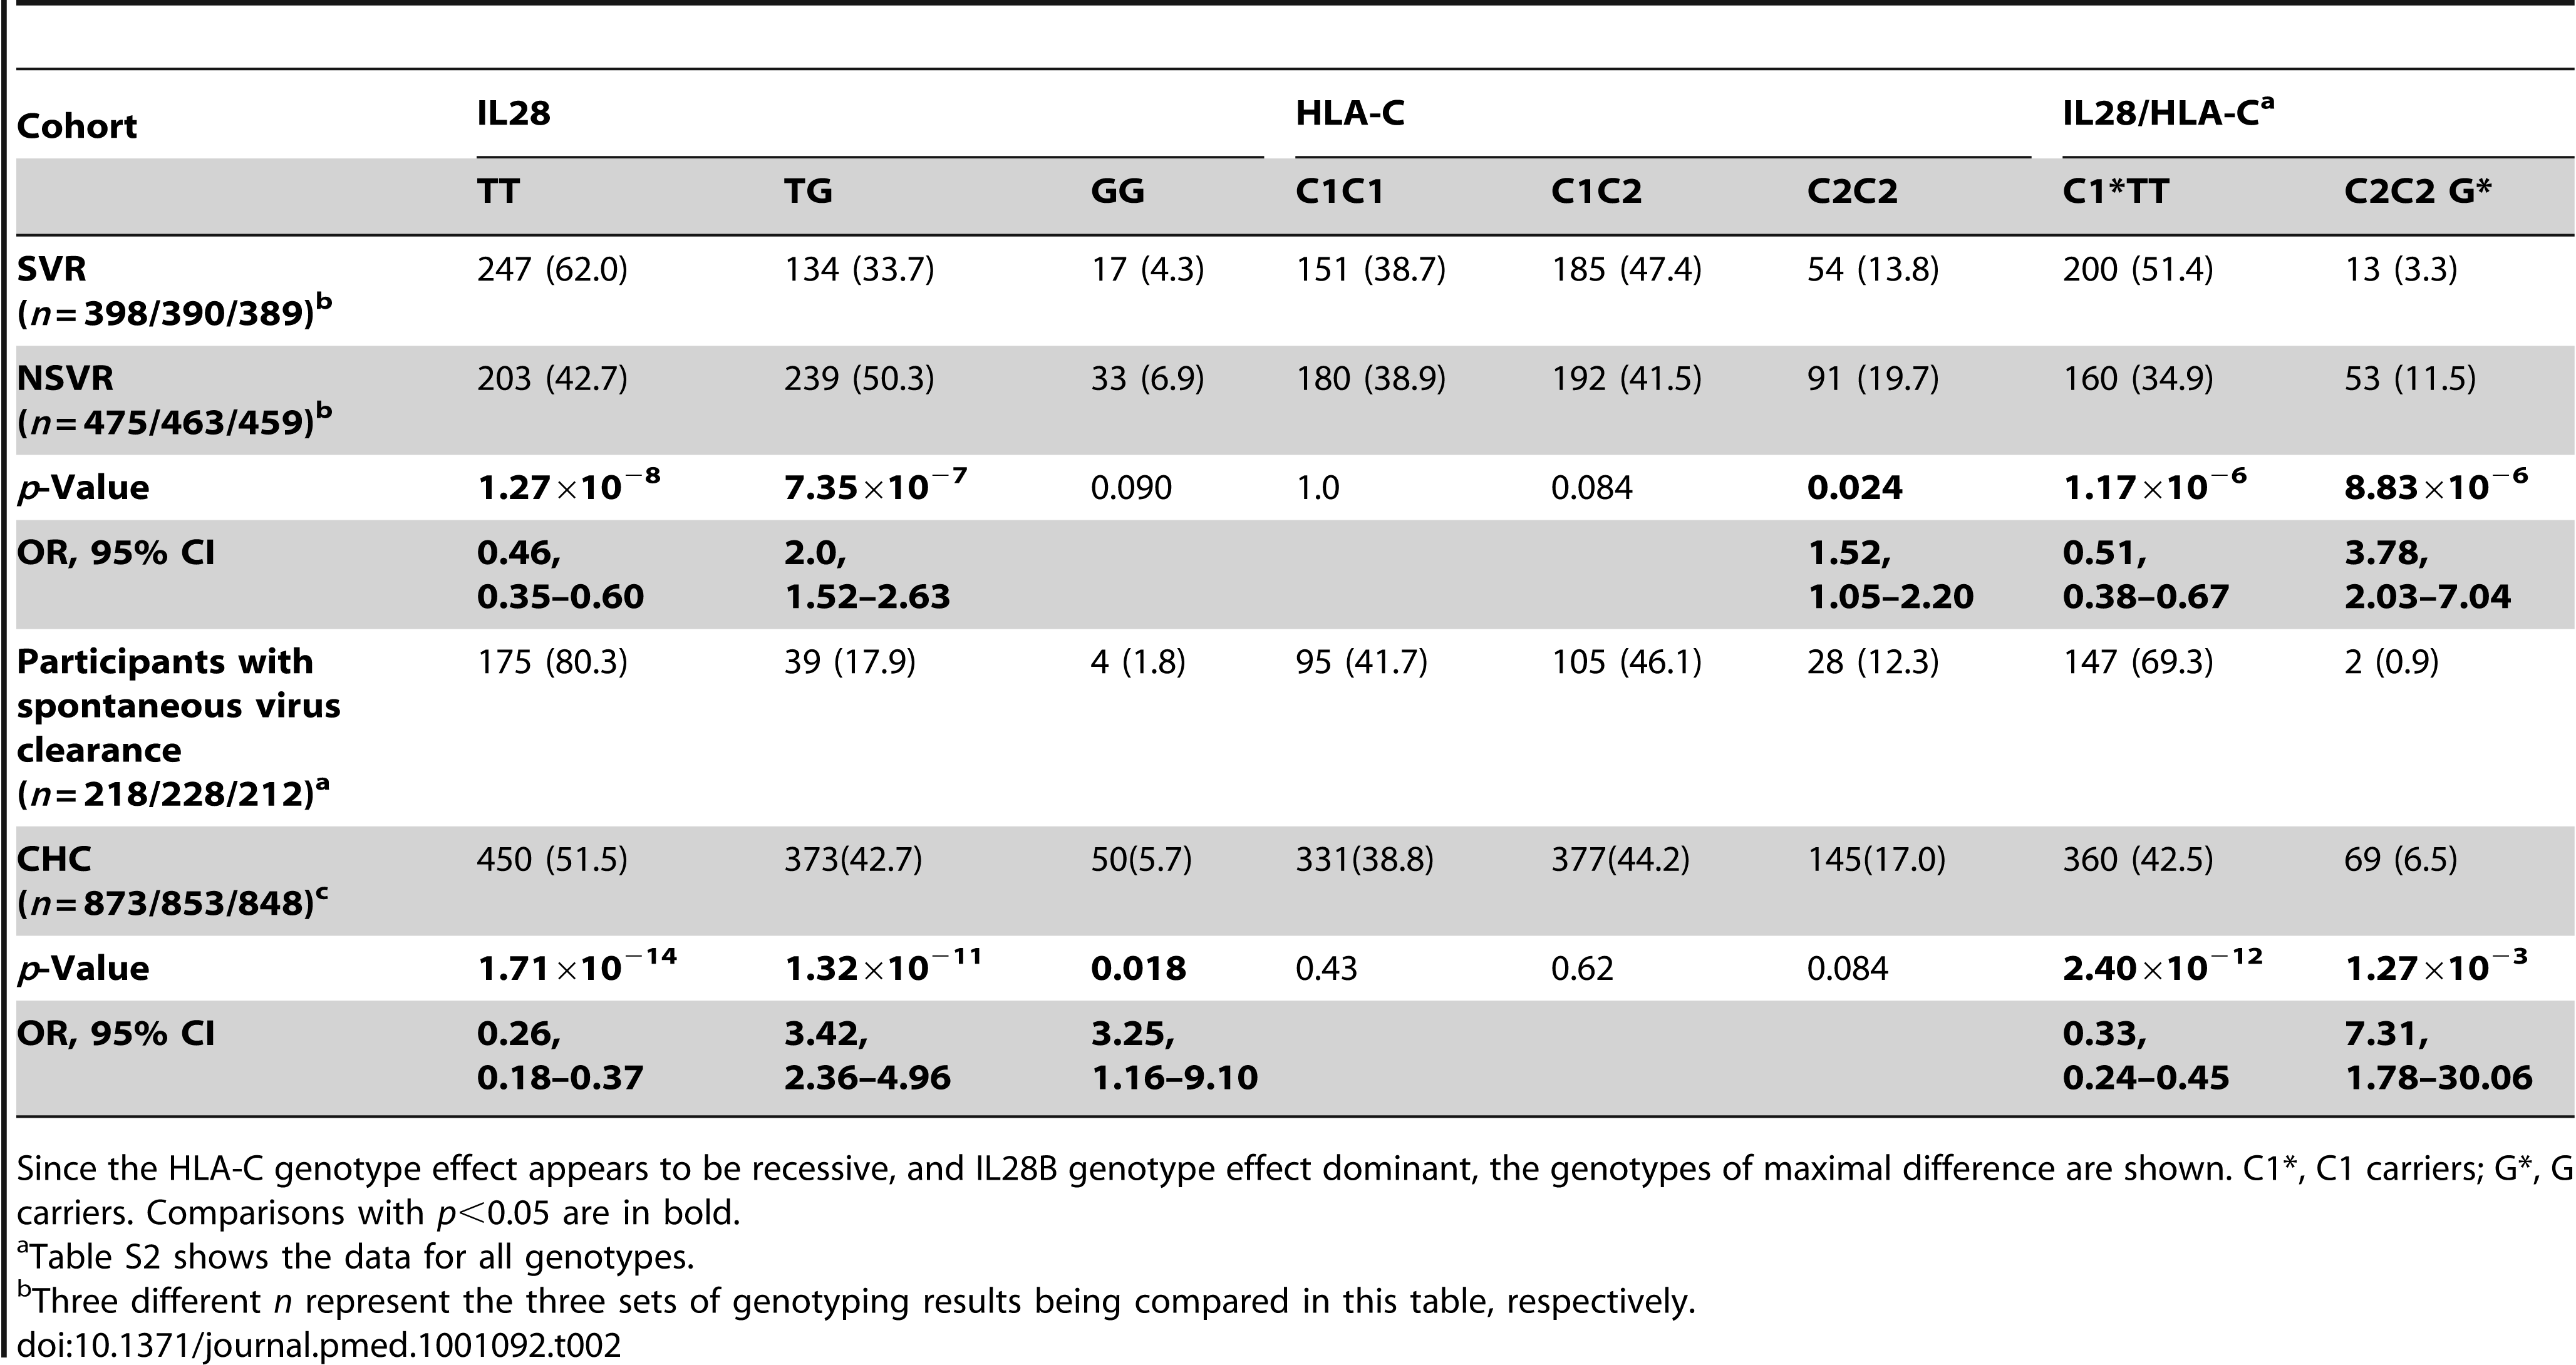 Association of <i>IL28B</i> rs8099917 and <i>HLA-C</i> genotypes with viral clearance on therapy and spontaneous clearance.